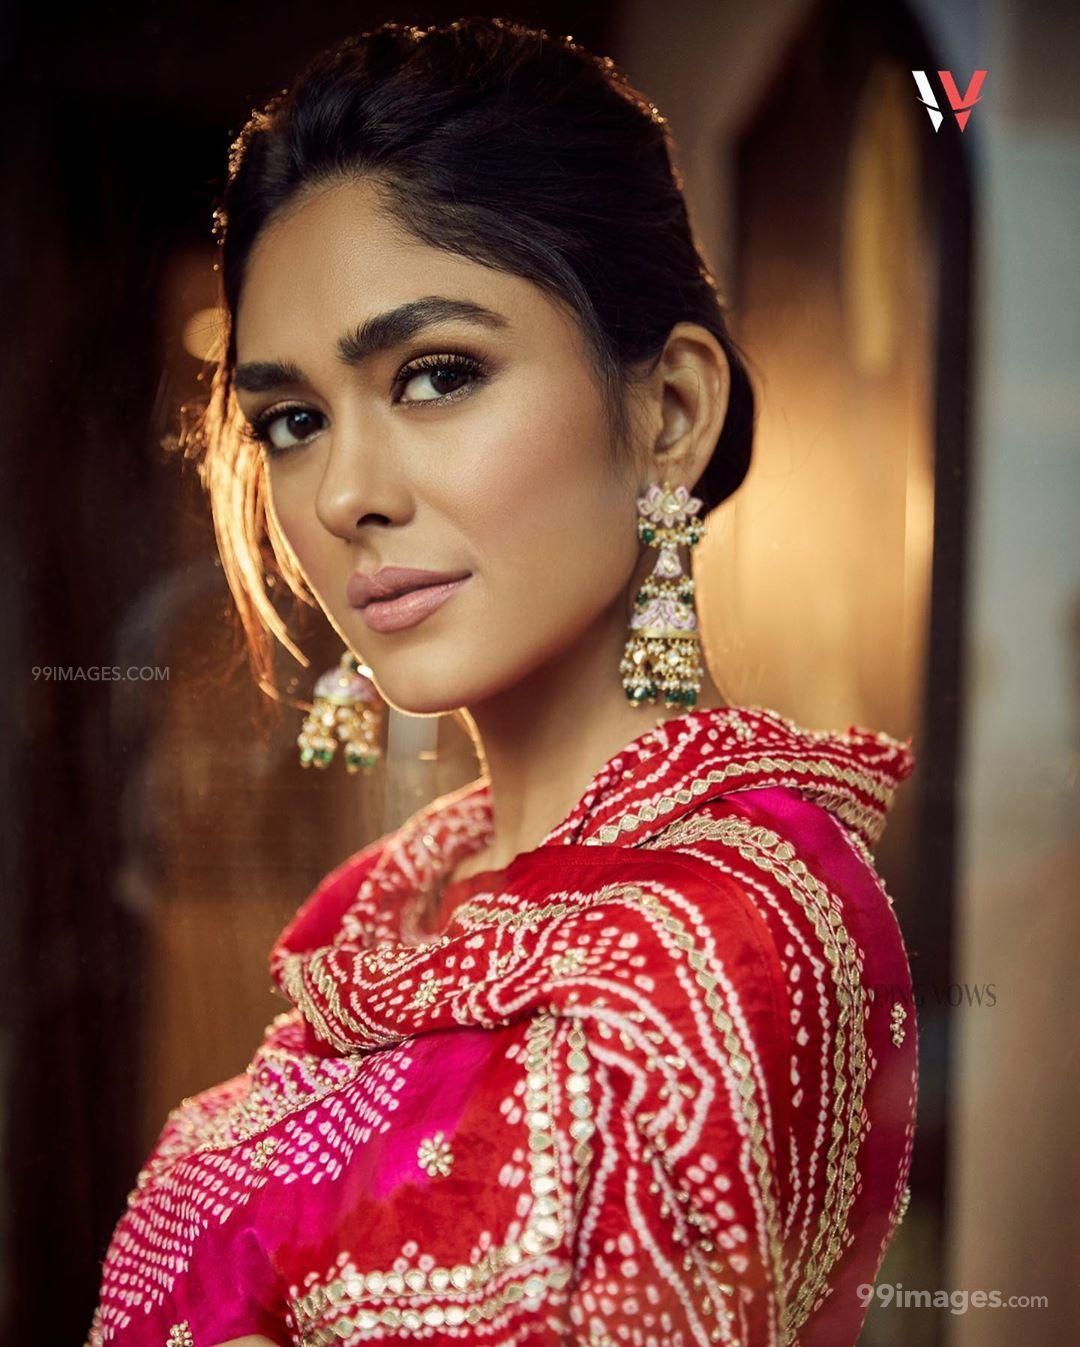 Mrunal Thakur Beautiful HD Photoshoot Stills & Mobile Wallpapers HD (1080p) (593750) - Mrunal Thakur